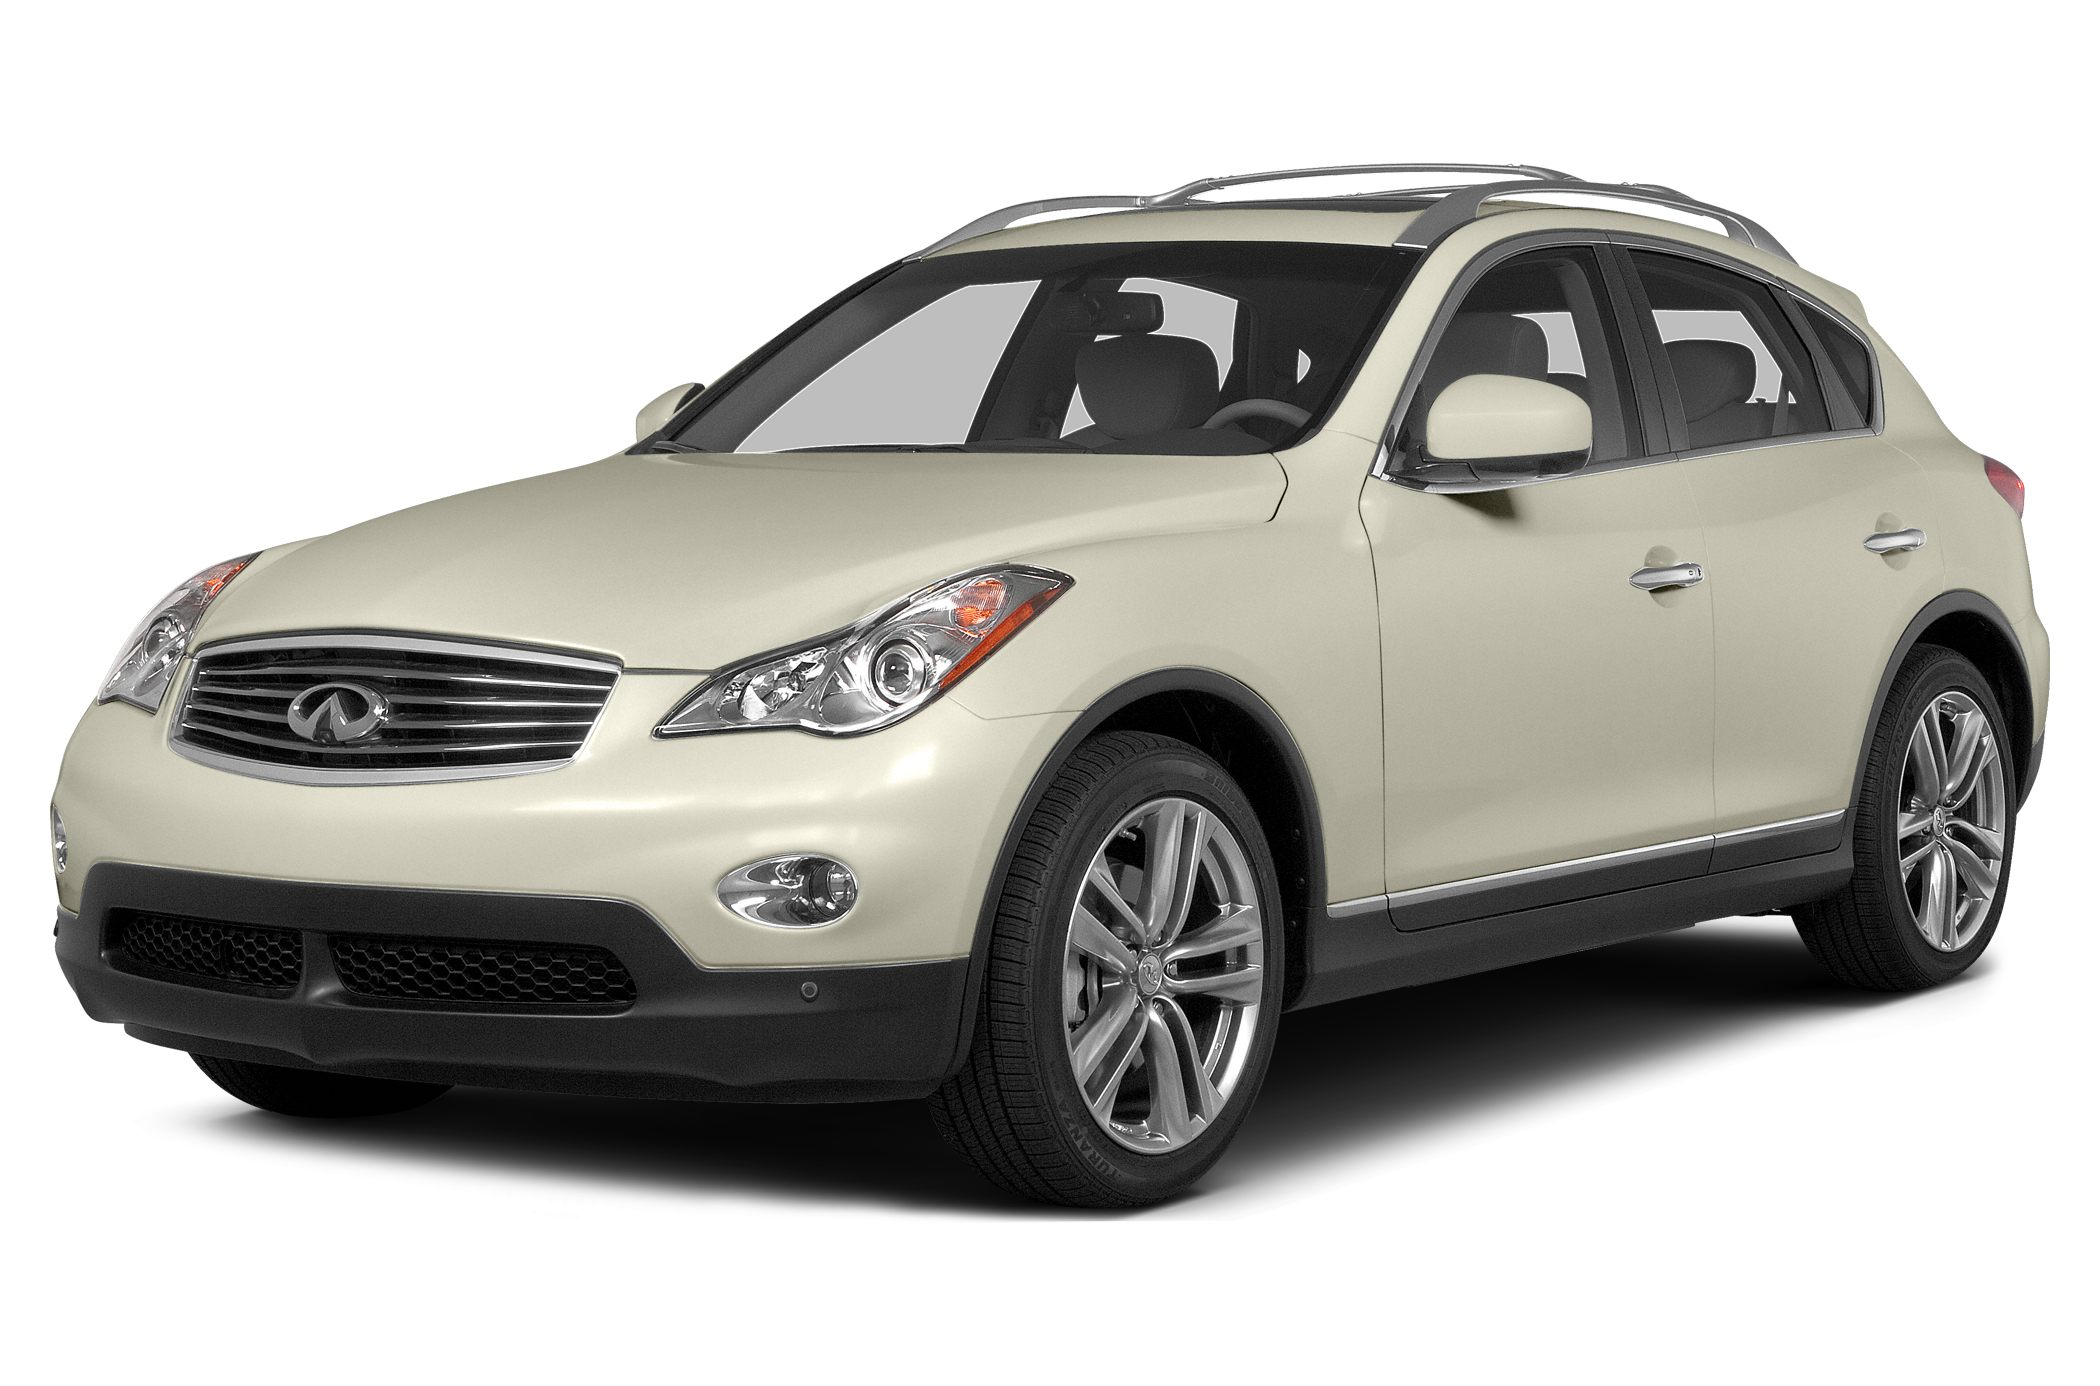 2015 Infiniti QX50 Journey SUV for sale in Charleston for $42,115 with 12 miles